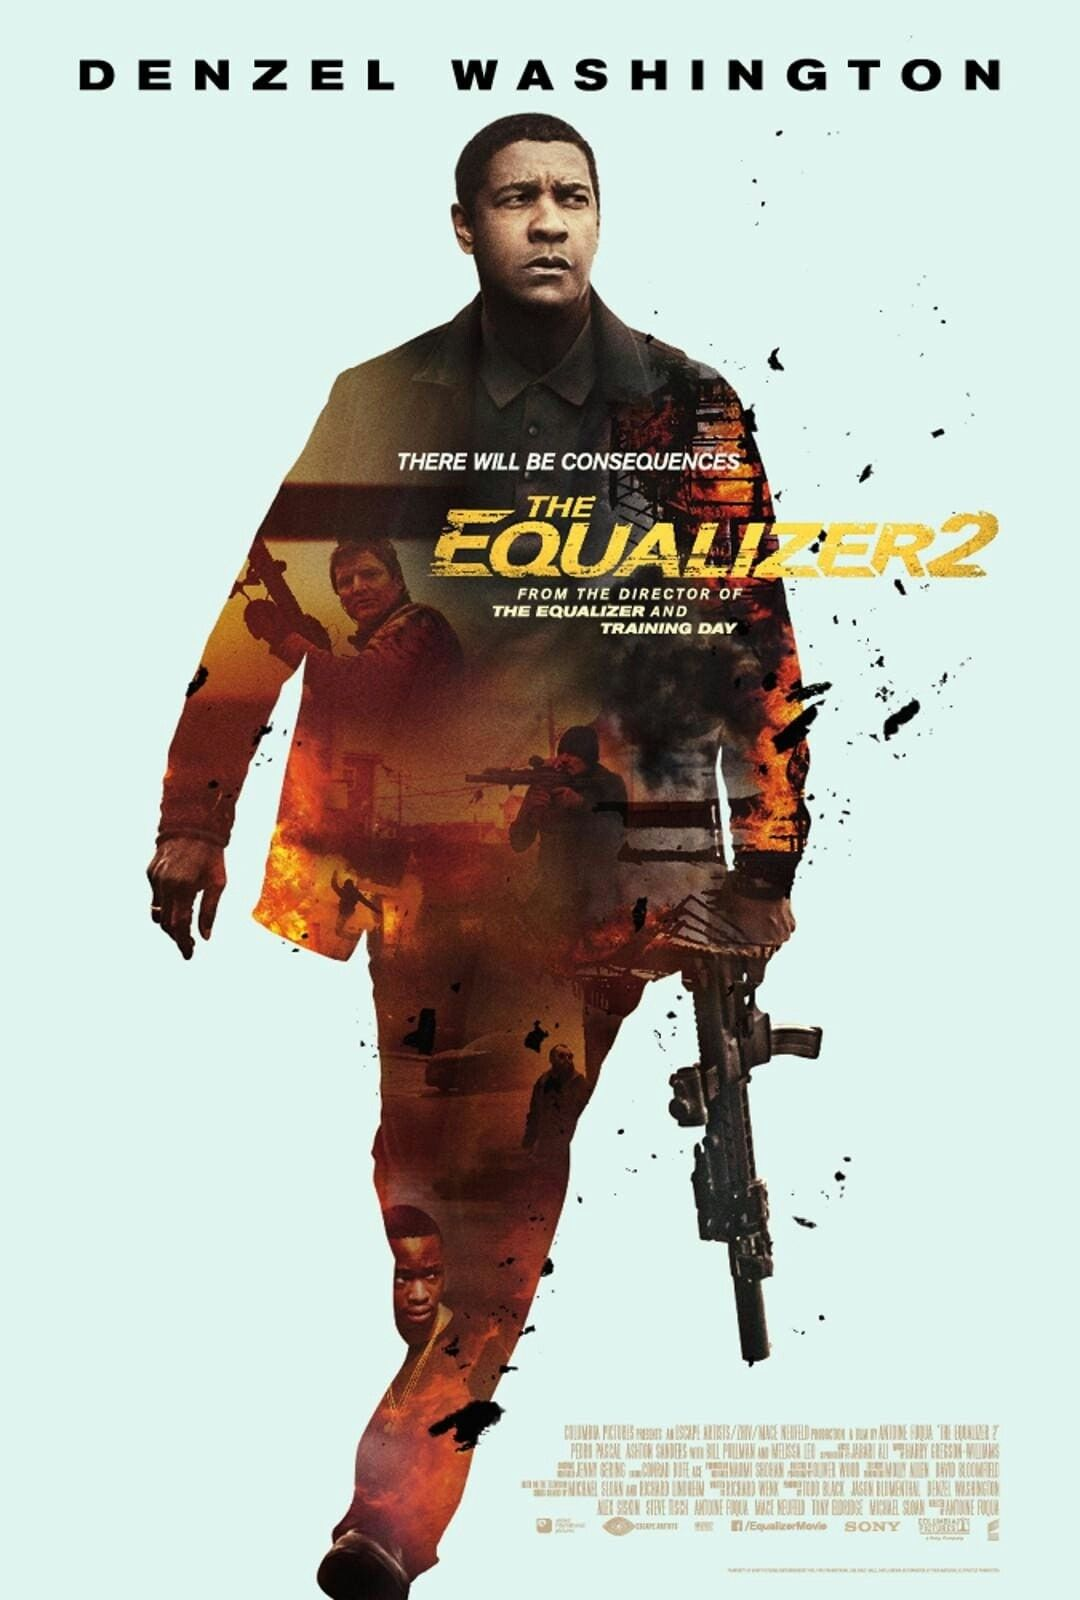 The Equaliser 2 movie poster Fantastic Movie posters